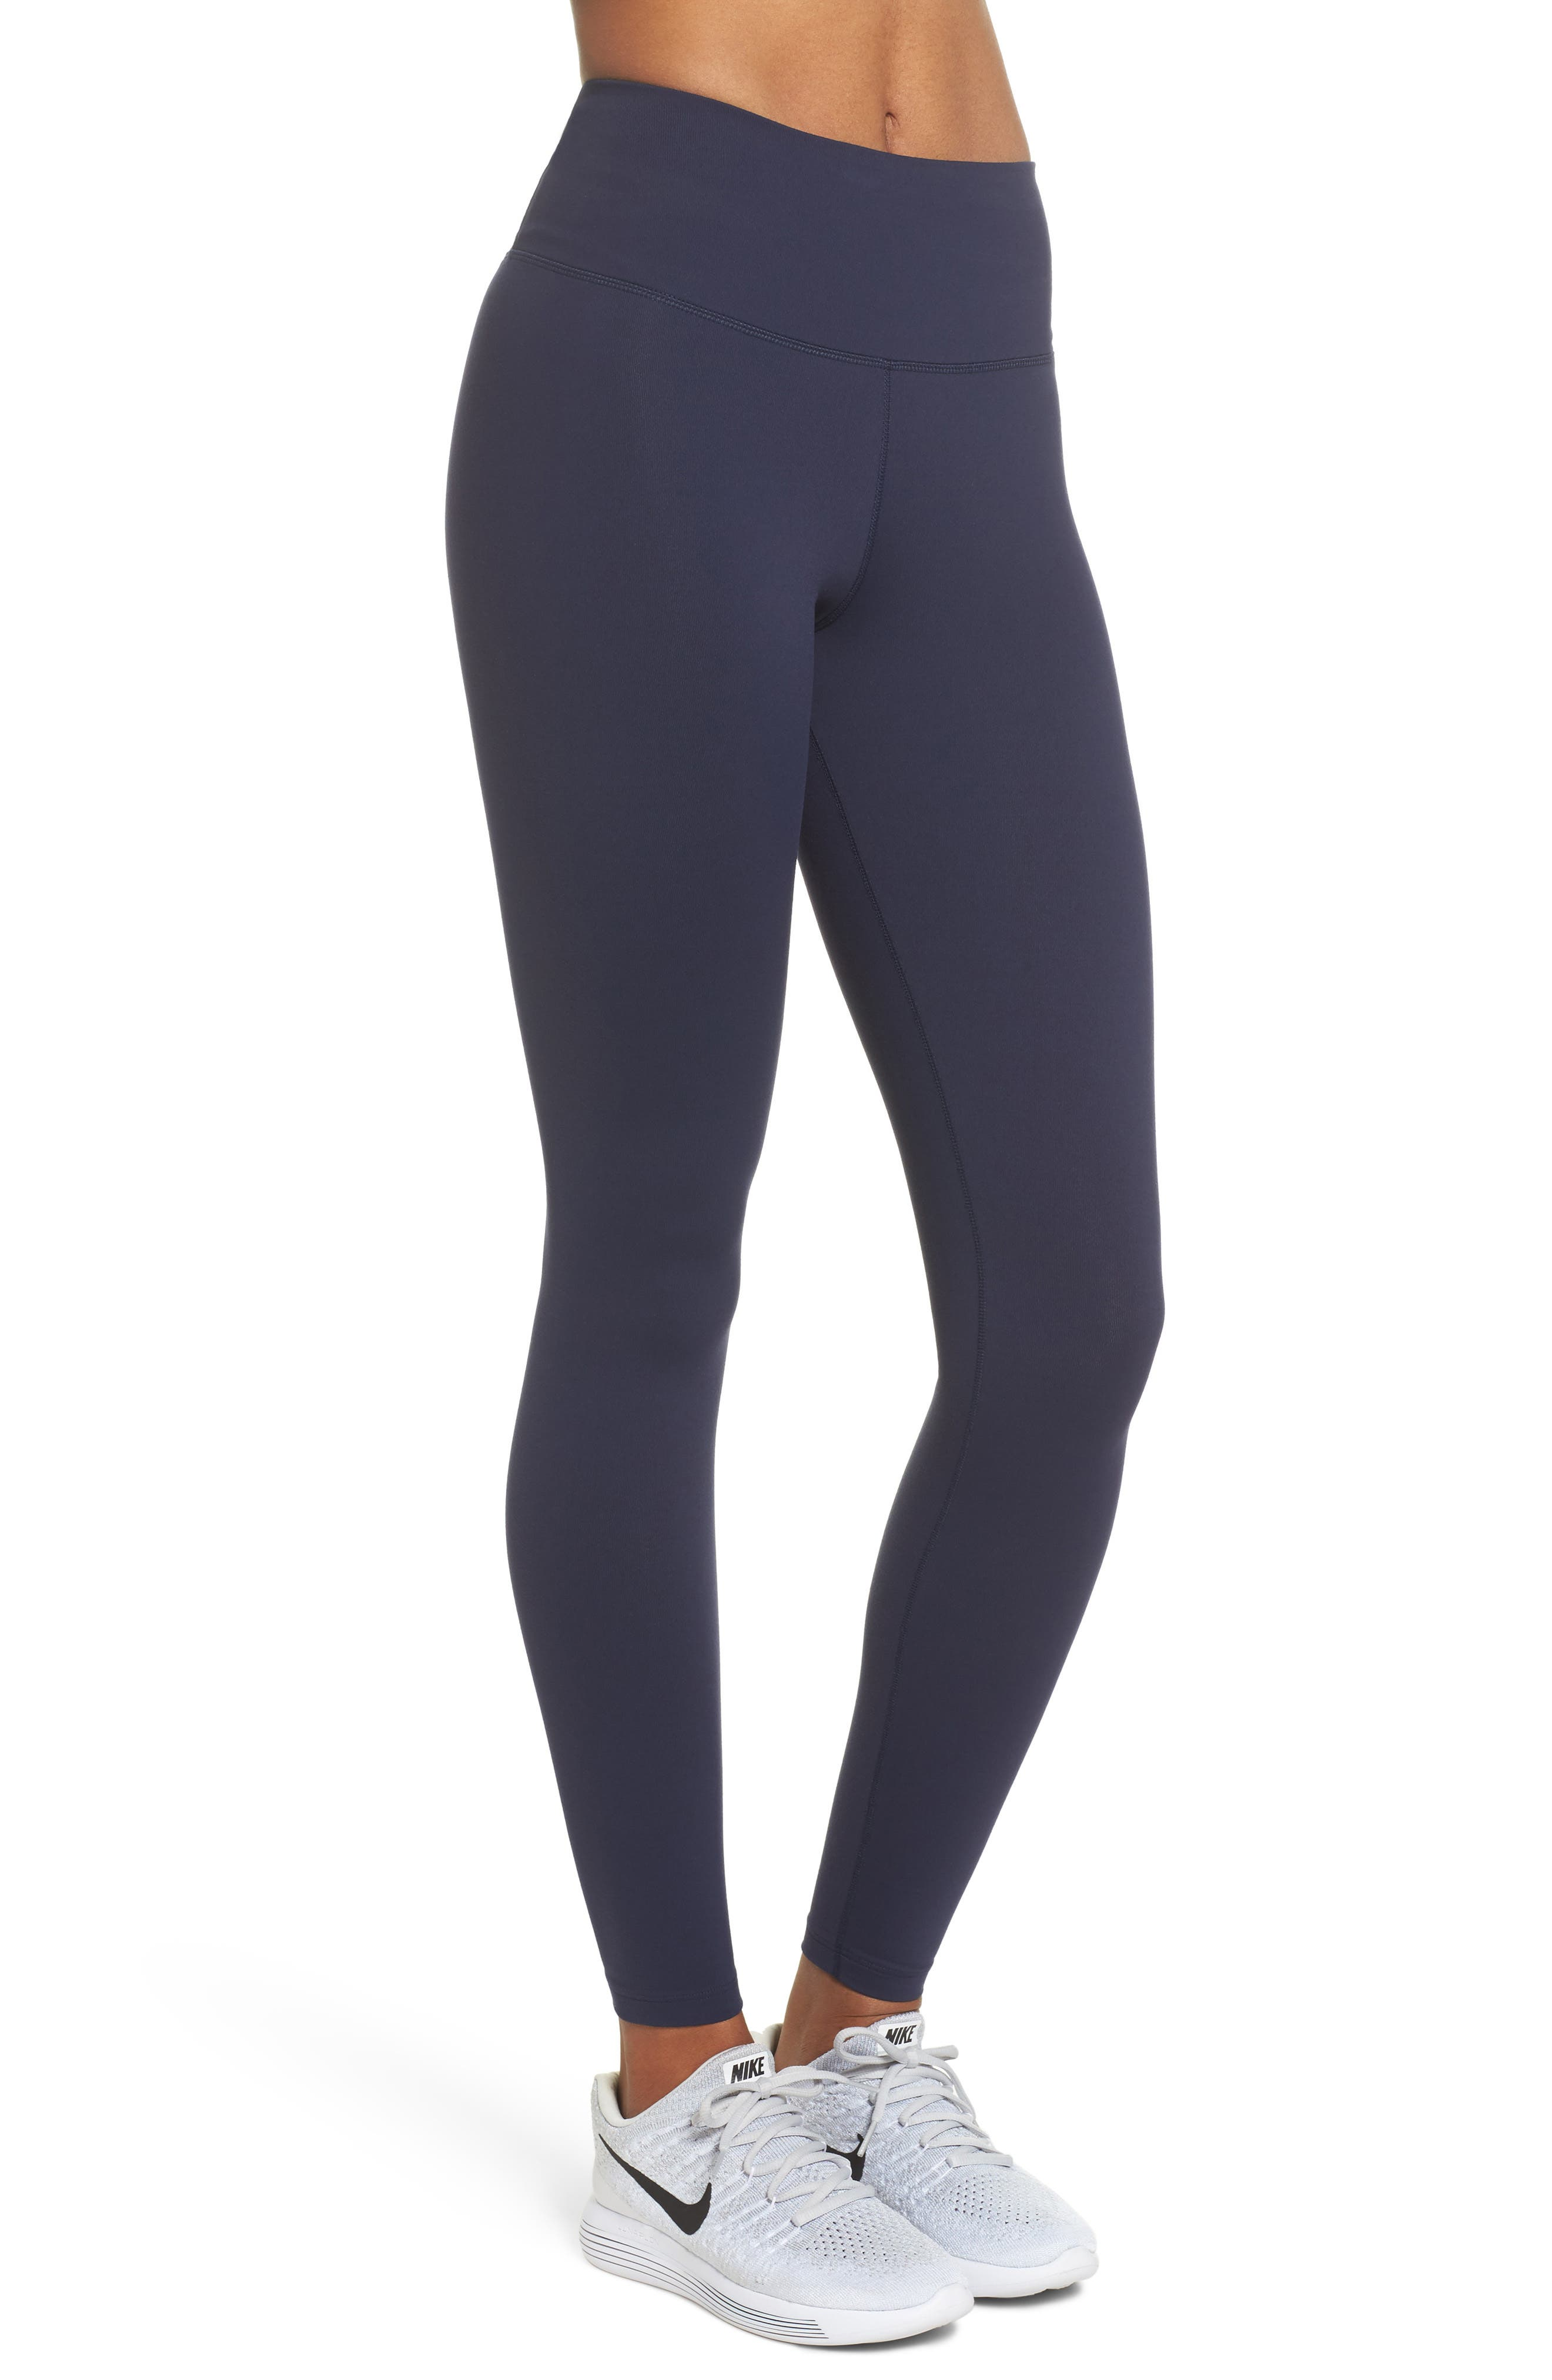 Sculpt Lux Training Tights,                             Alternate thumbnail 3, color,                             Obsidian/Clear